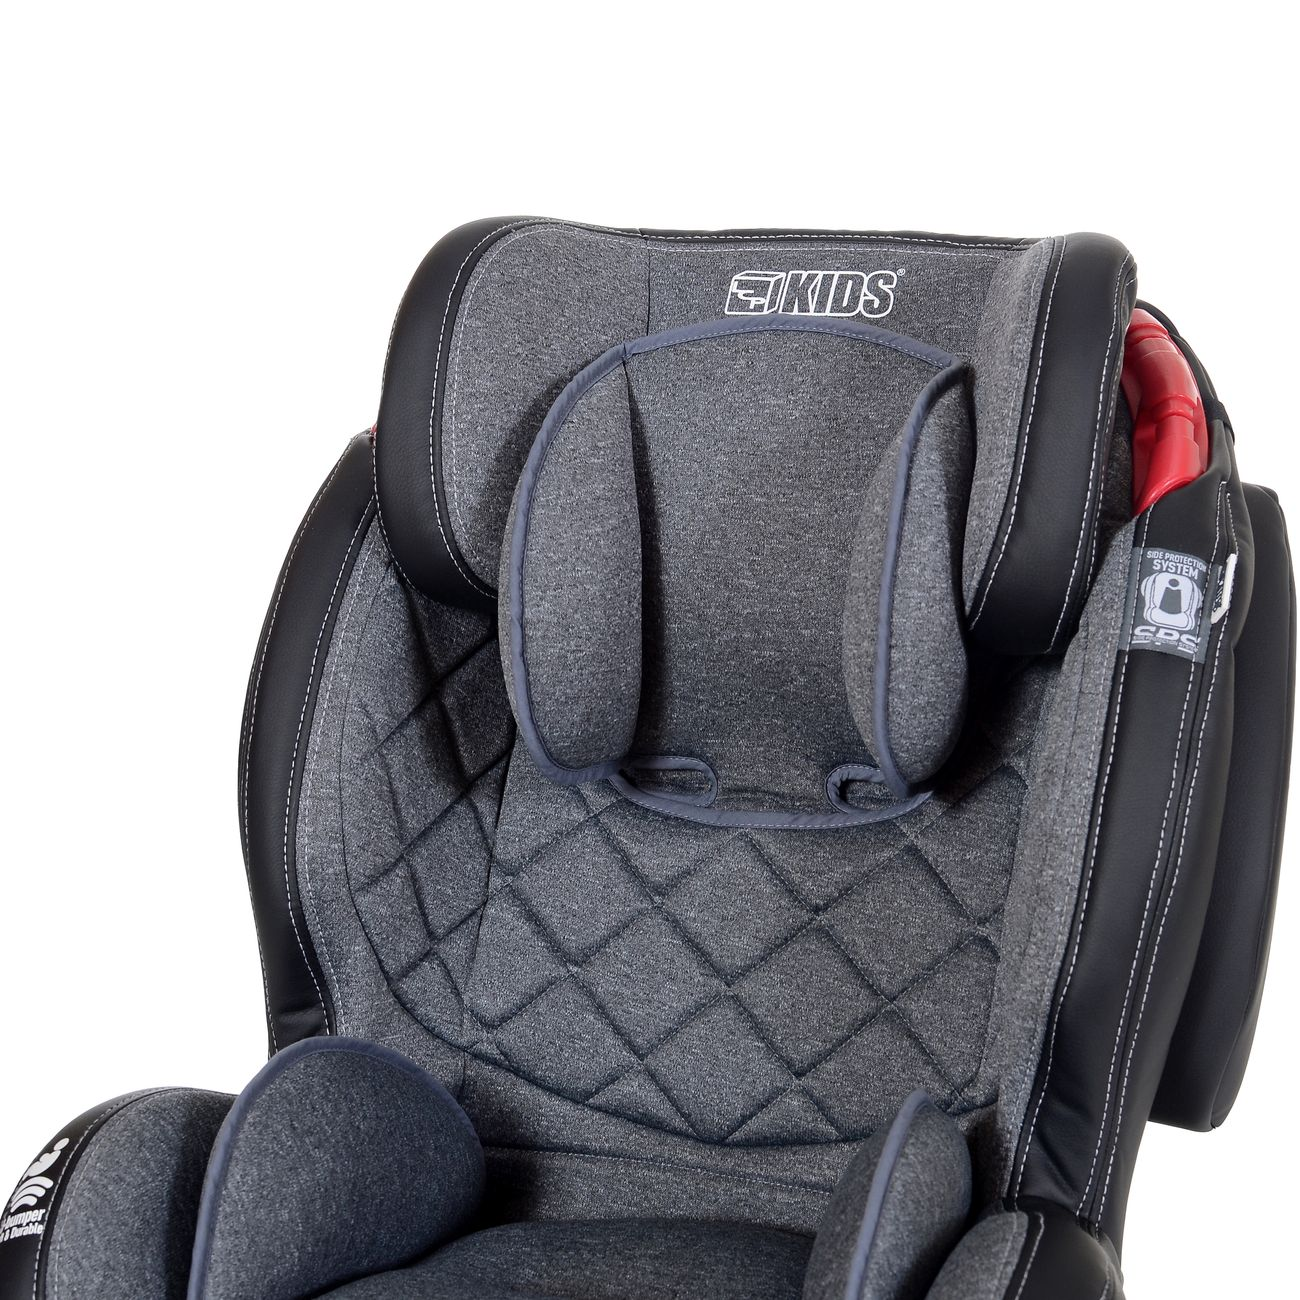 auto kindersitz gt comfort isofix 9 36 kg gruppe 1 2 3 schlafposition ebay. Black Bedroom Furniture Sets. Home Design Ideas